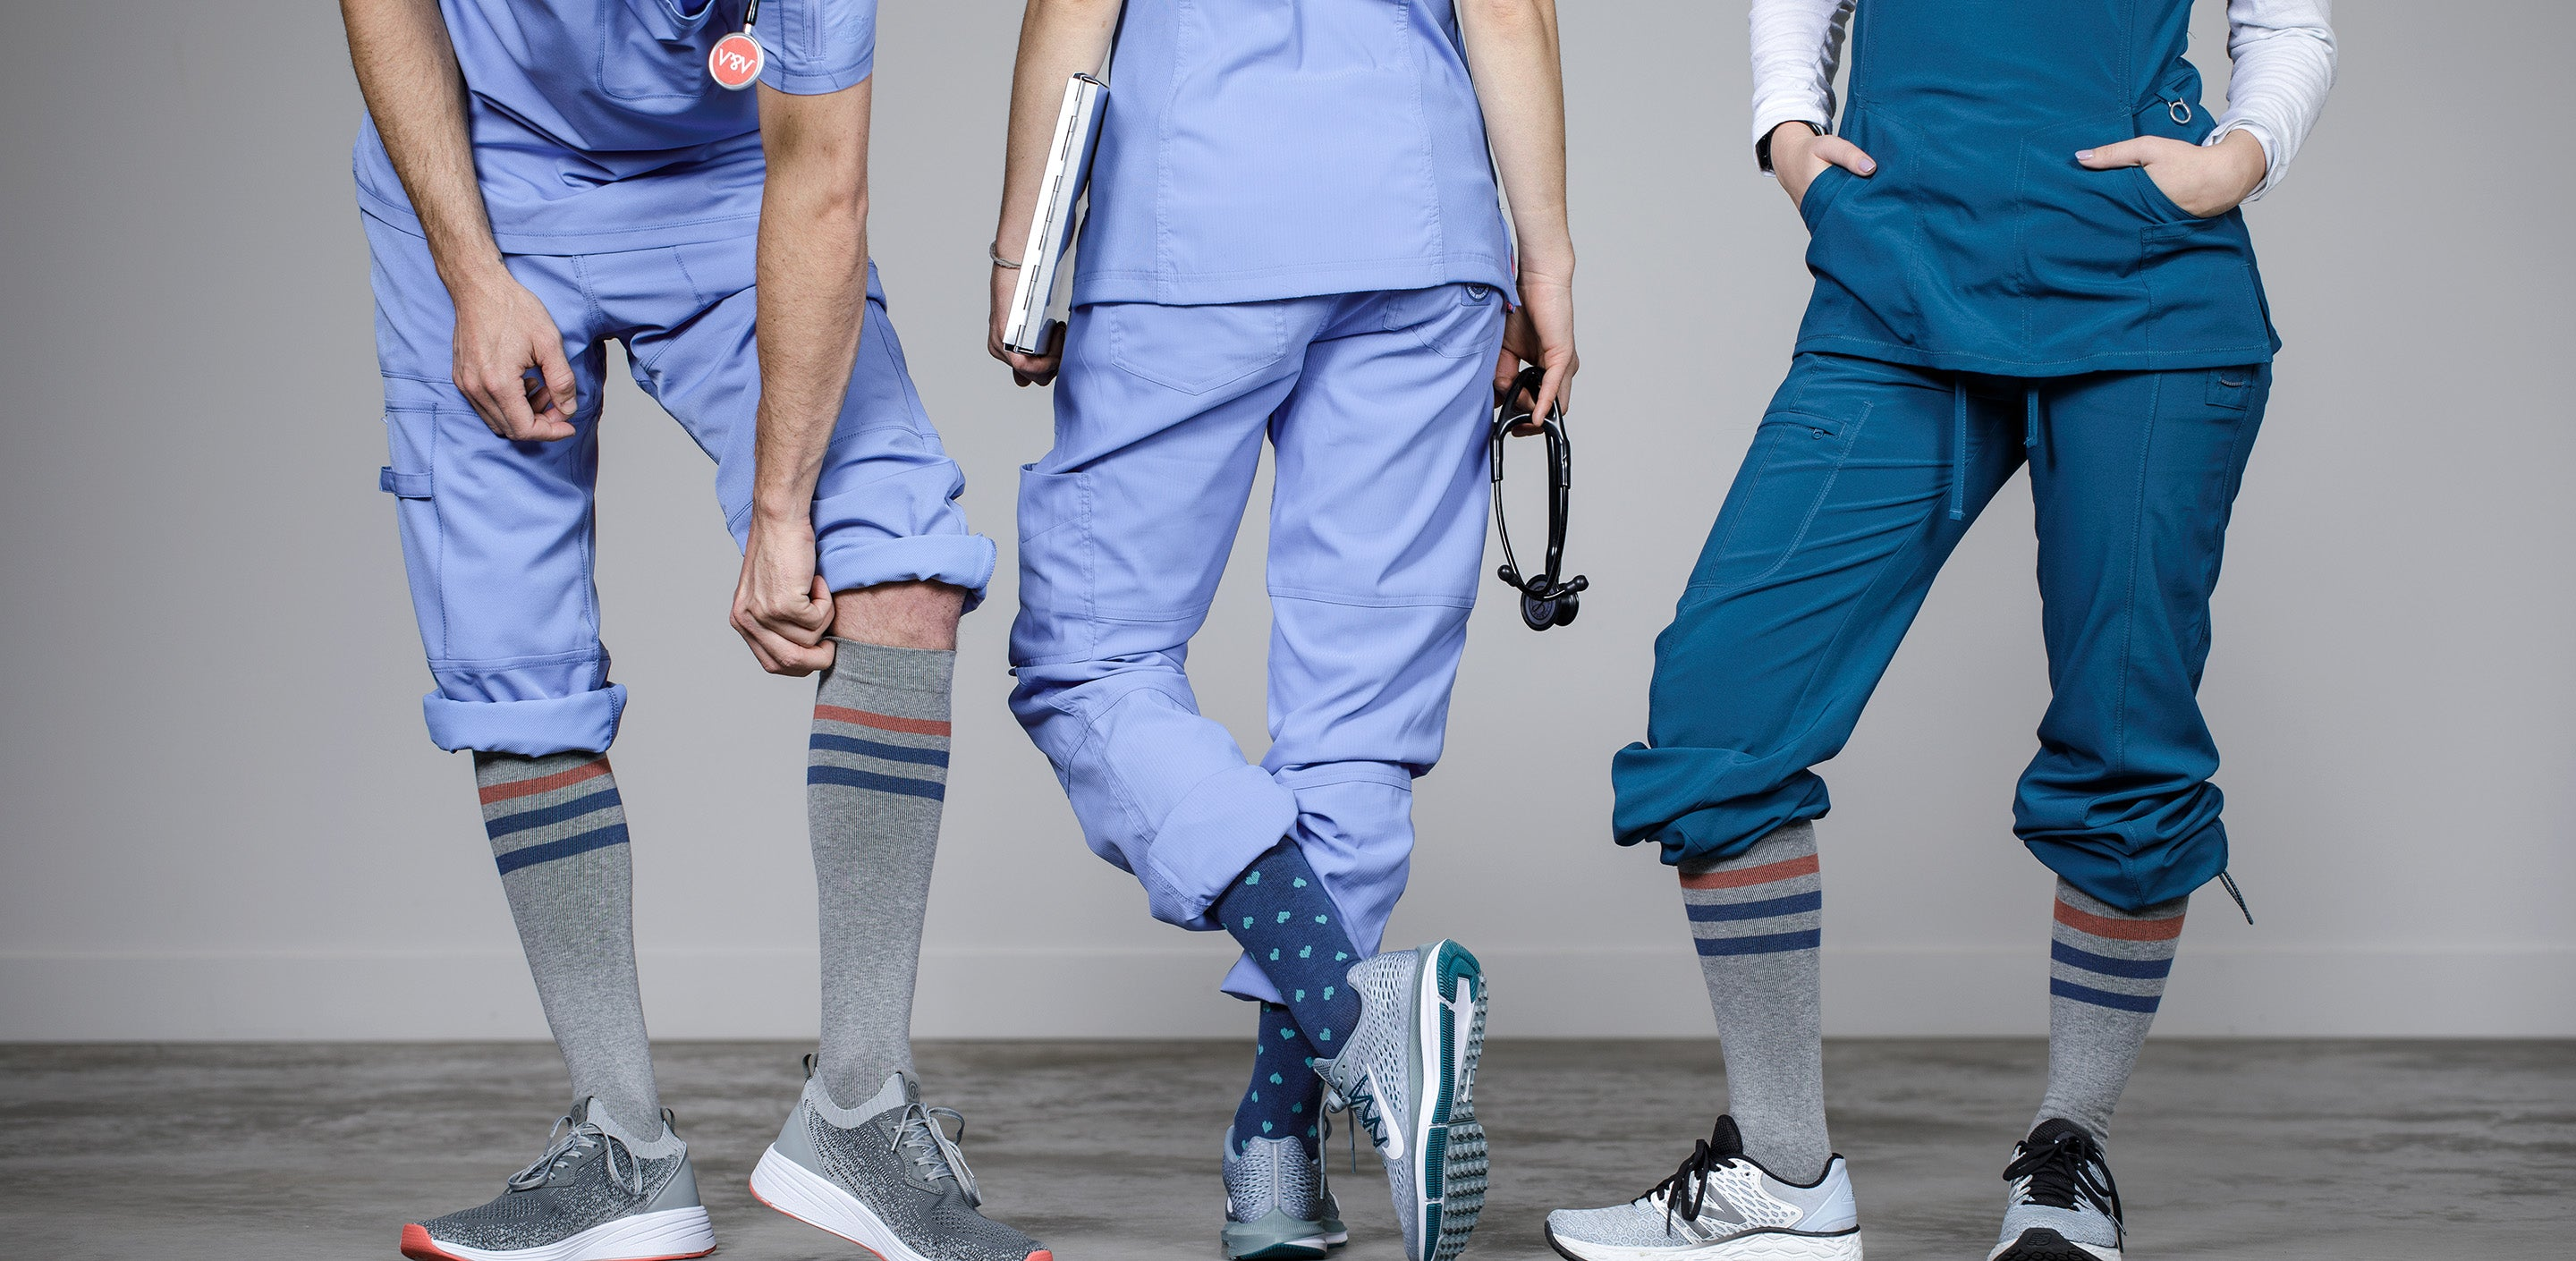 Nurses Wearing Compression Socks